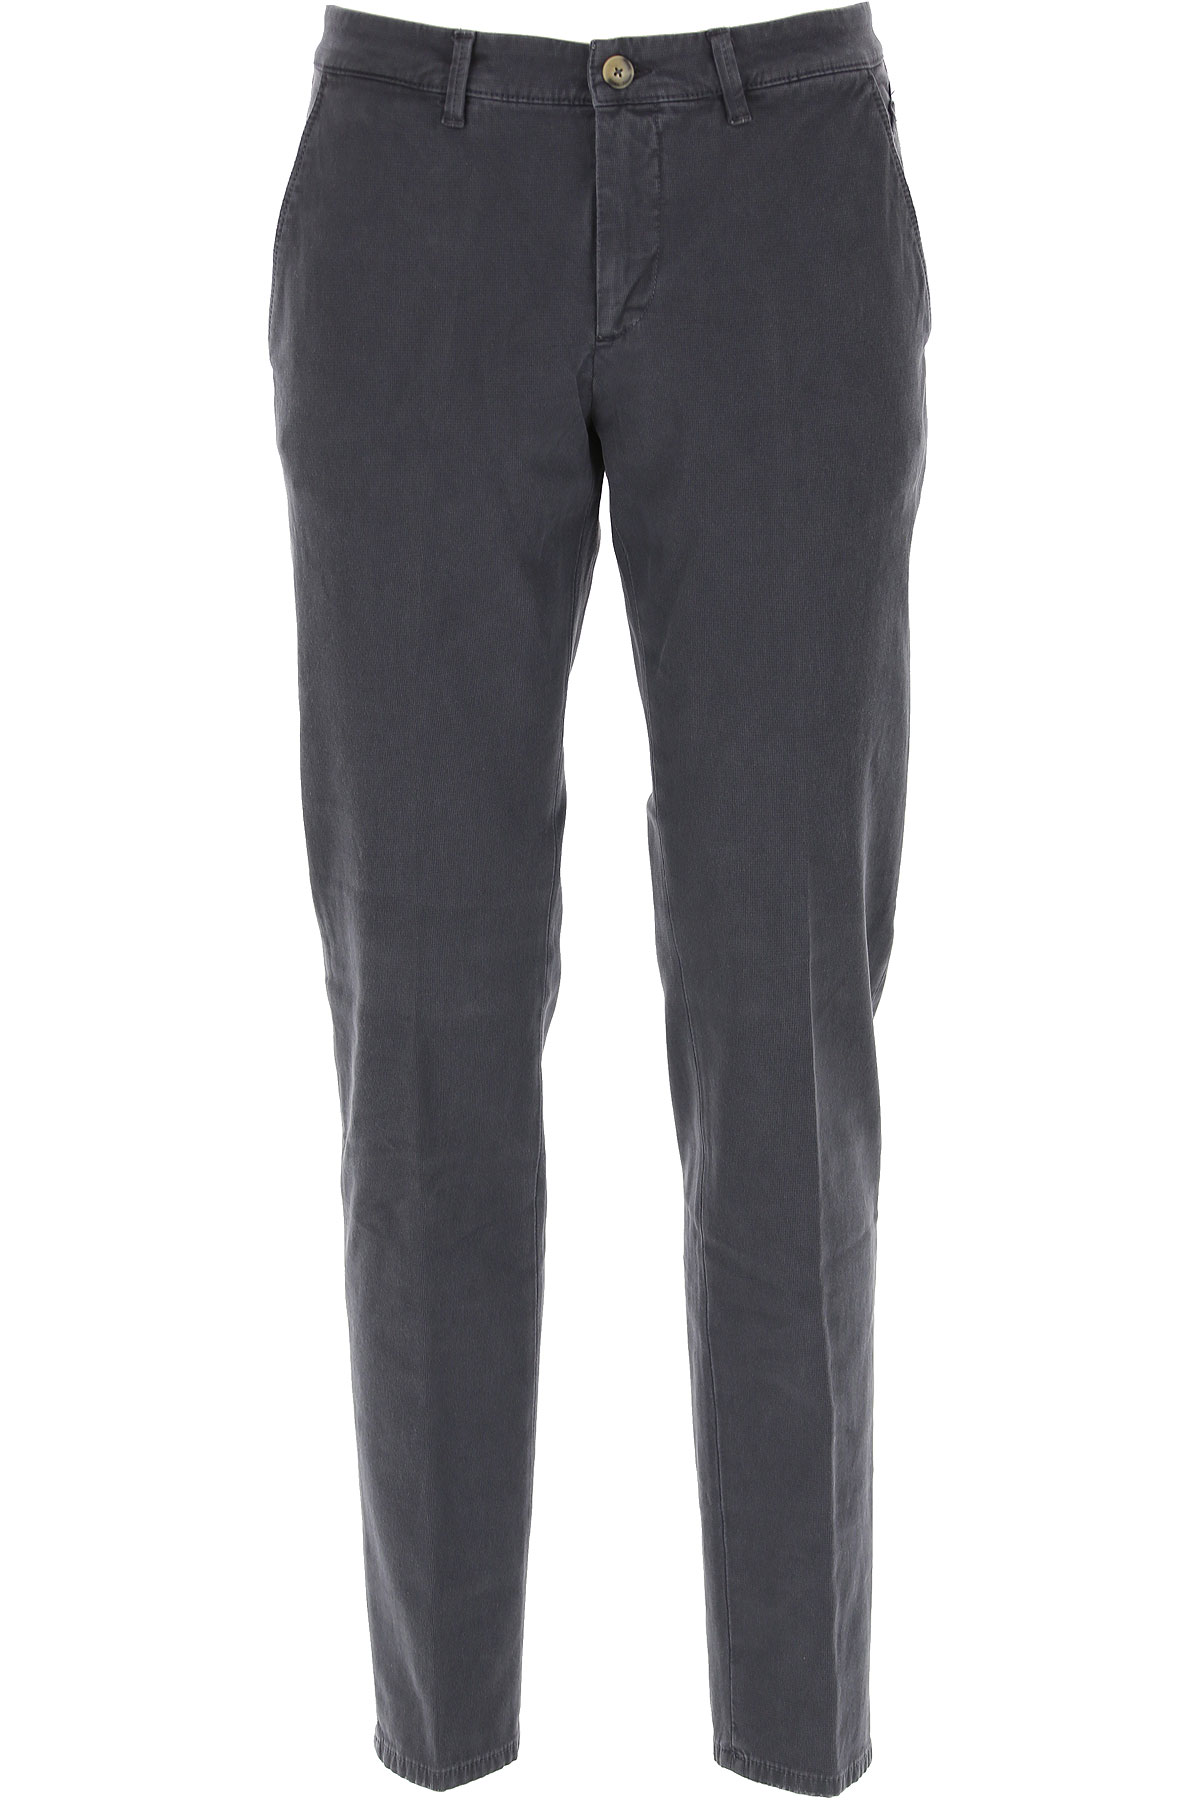 Jeckerson Pants for Men On Sale, navy, Cotto, 2019, 30 31 32 33 34 36